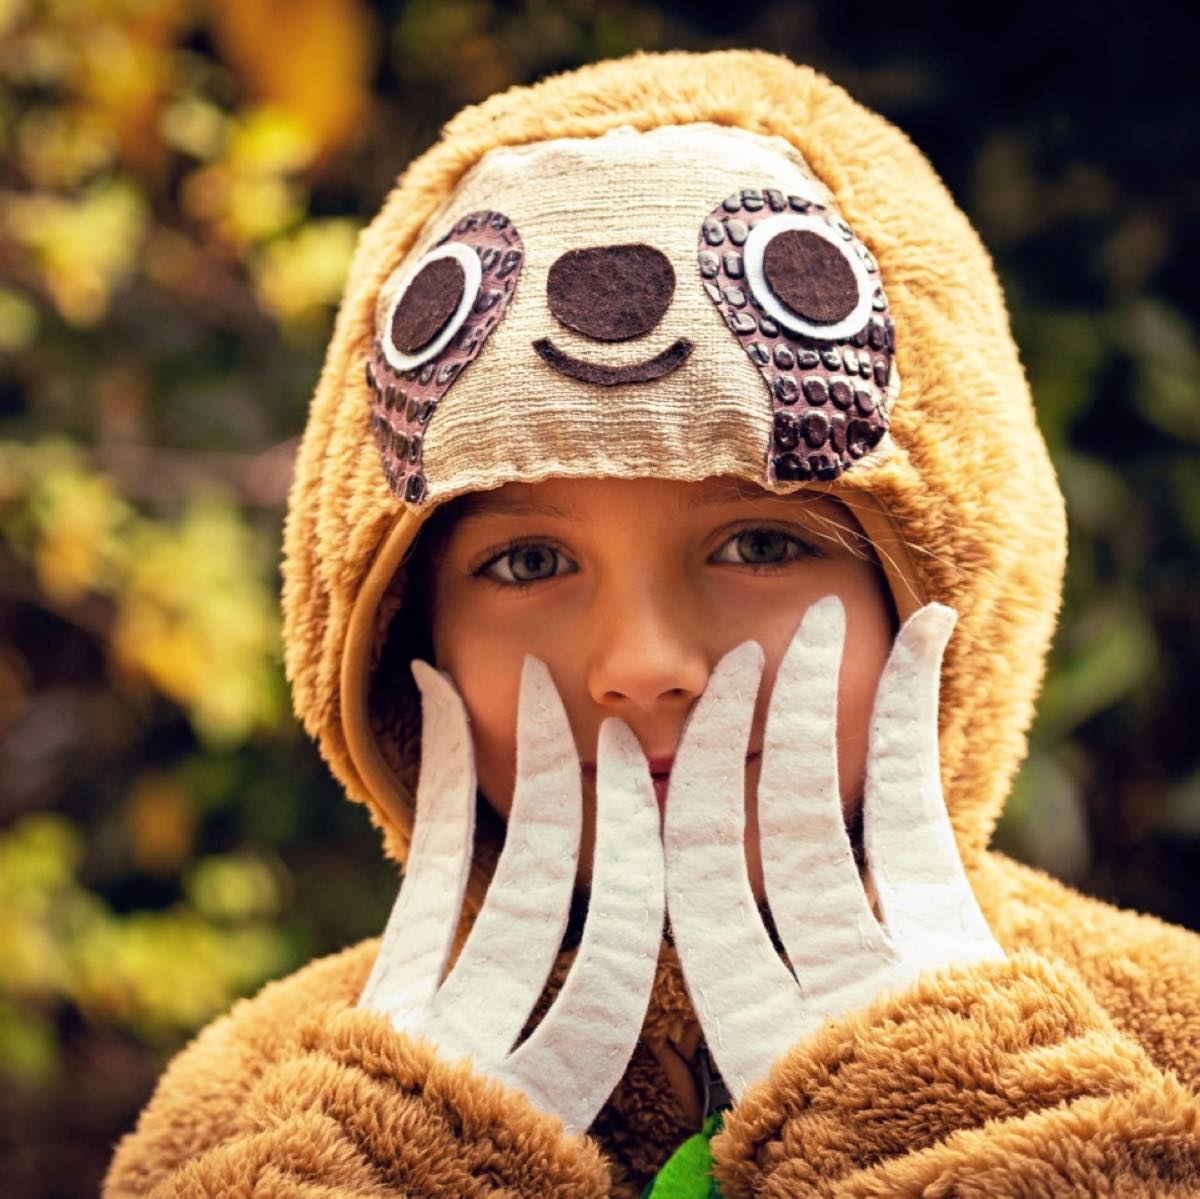 Transform your old hoody into a sloth costume